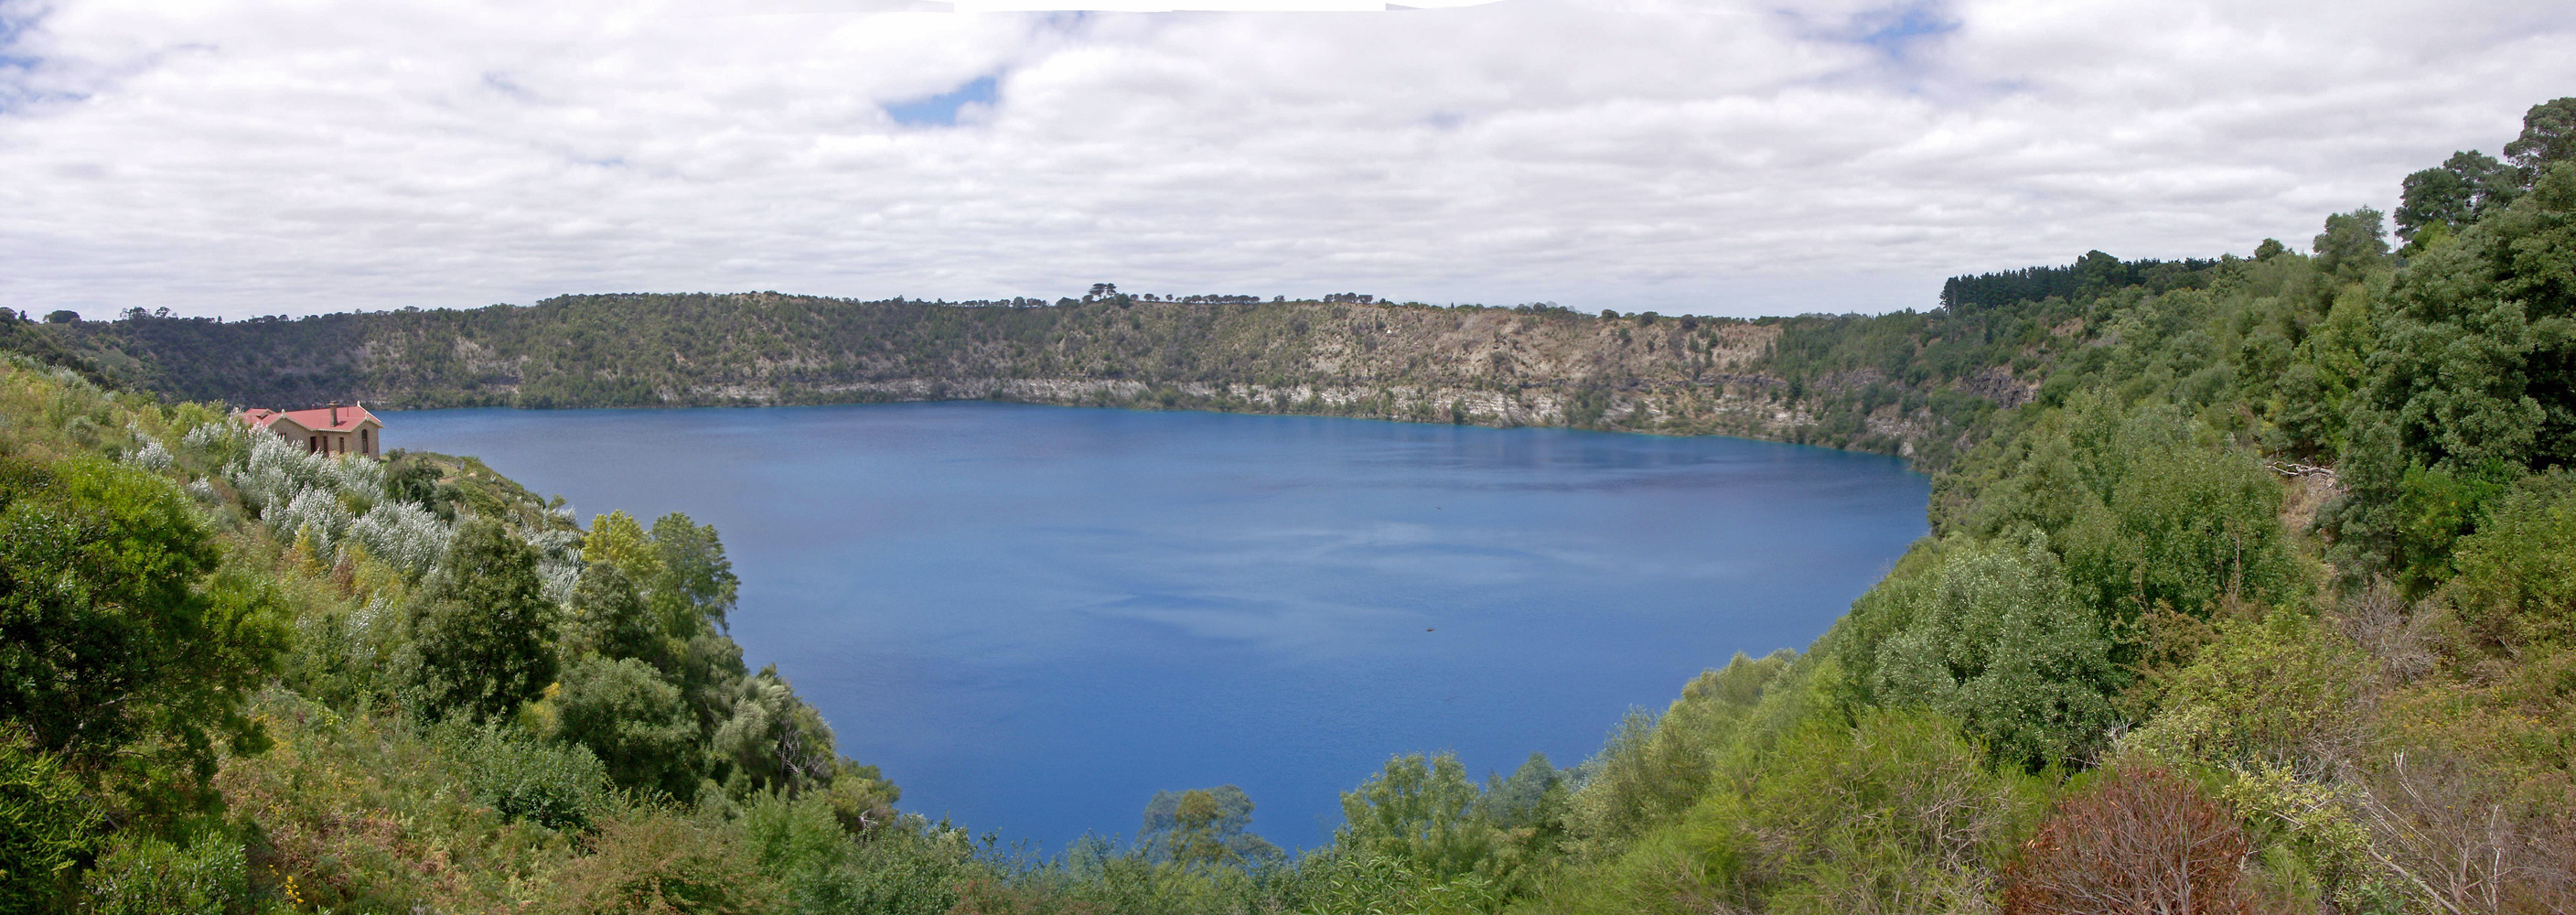 Mount Gambier Australia  city photos : Blue Lake Mount Gambier Australia Wikimedia Commons